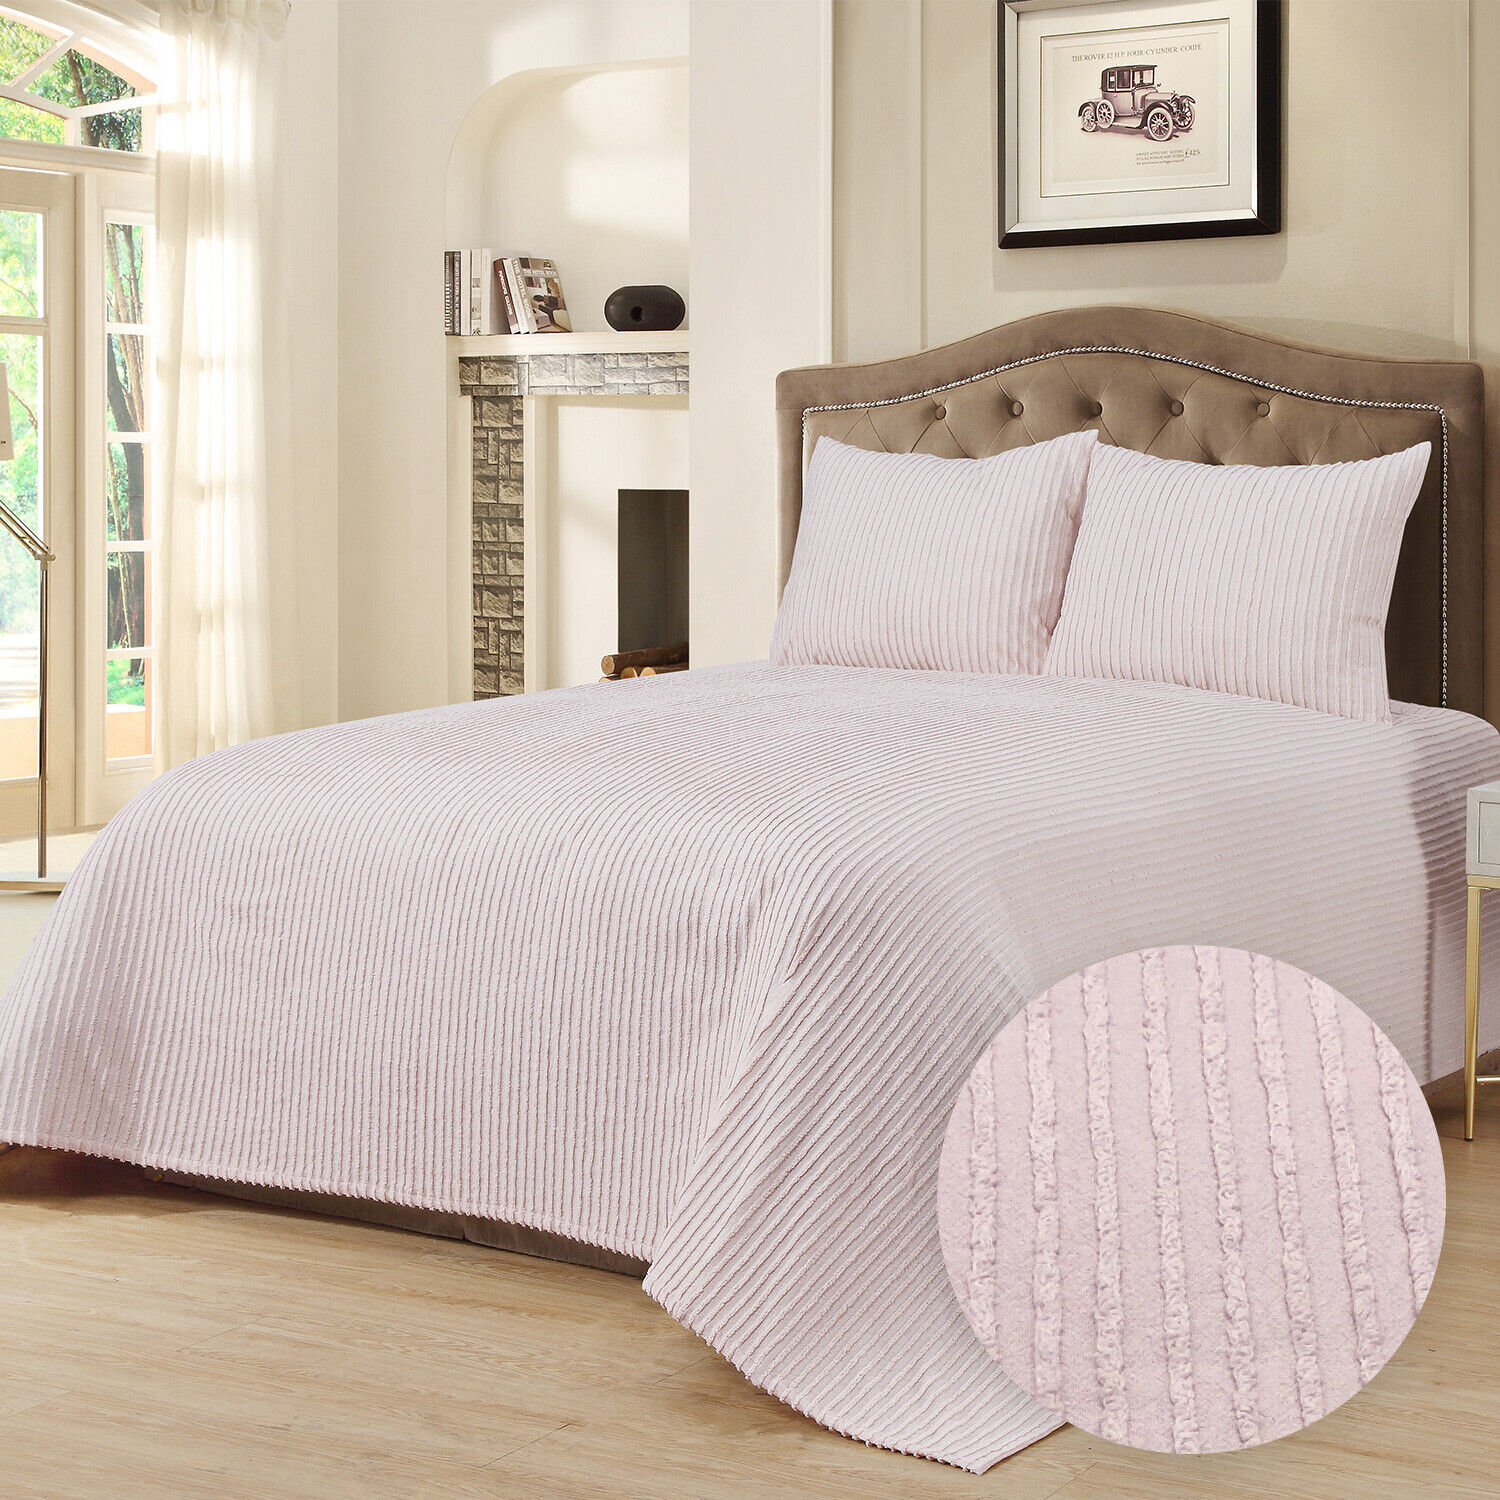 100% Cotton Tufted Chenille Stripe Bedspread Bedding Twin Full Queen King, Blush Bedding